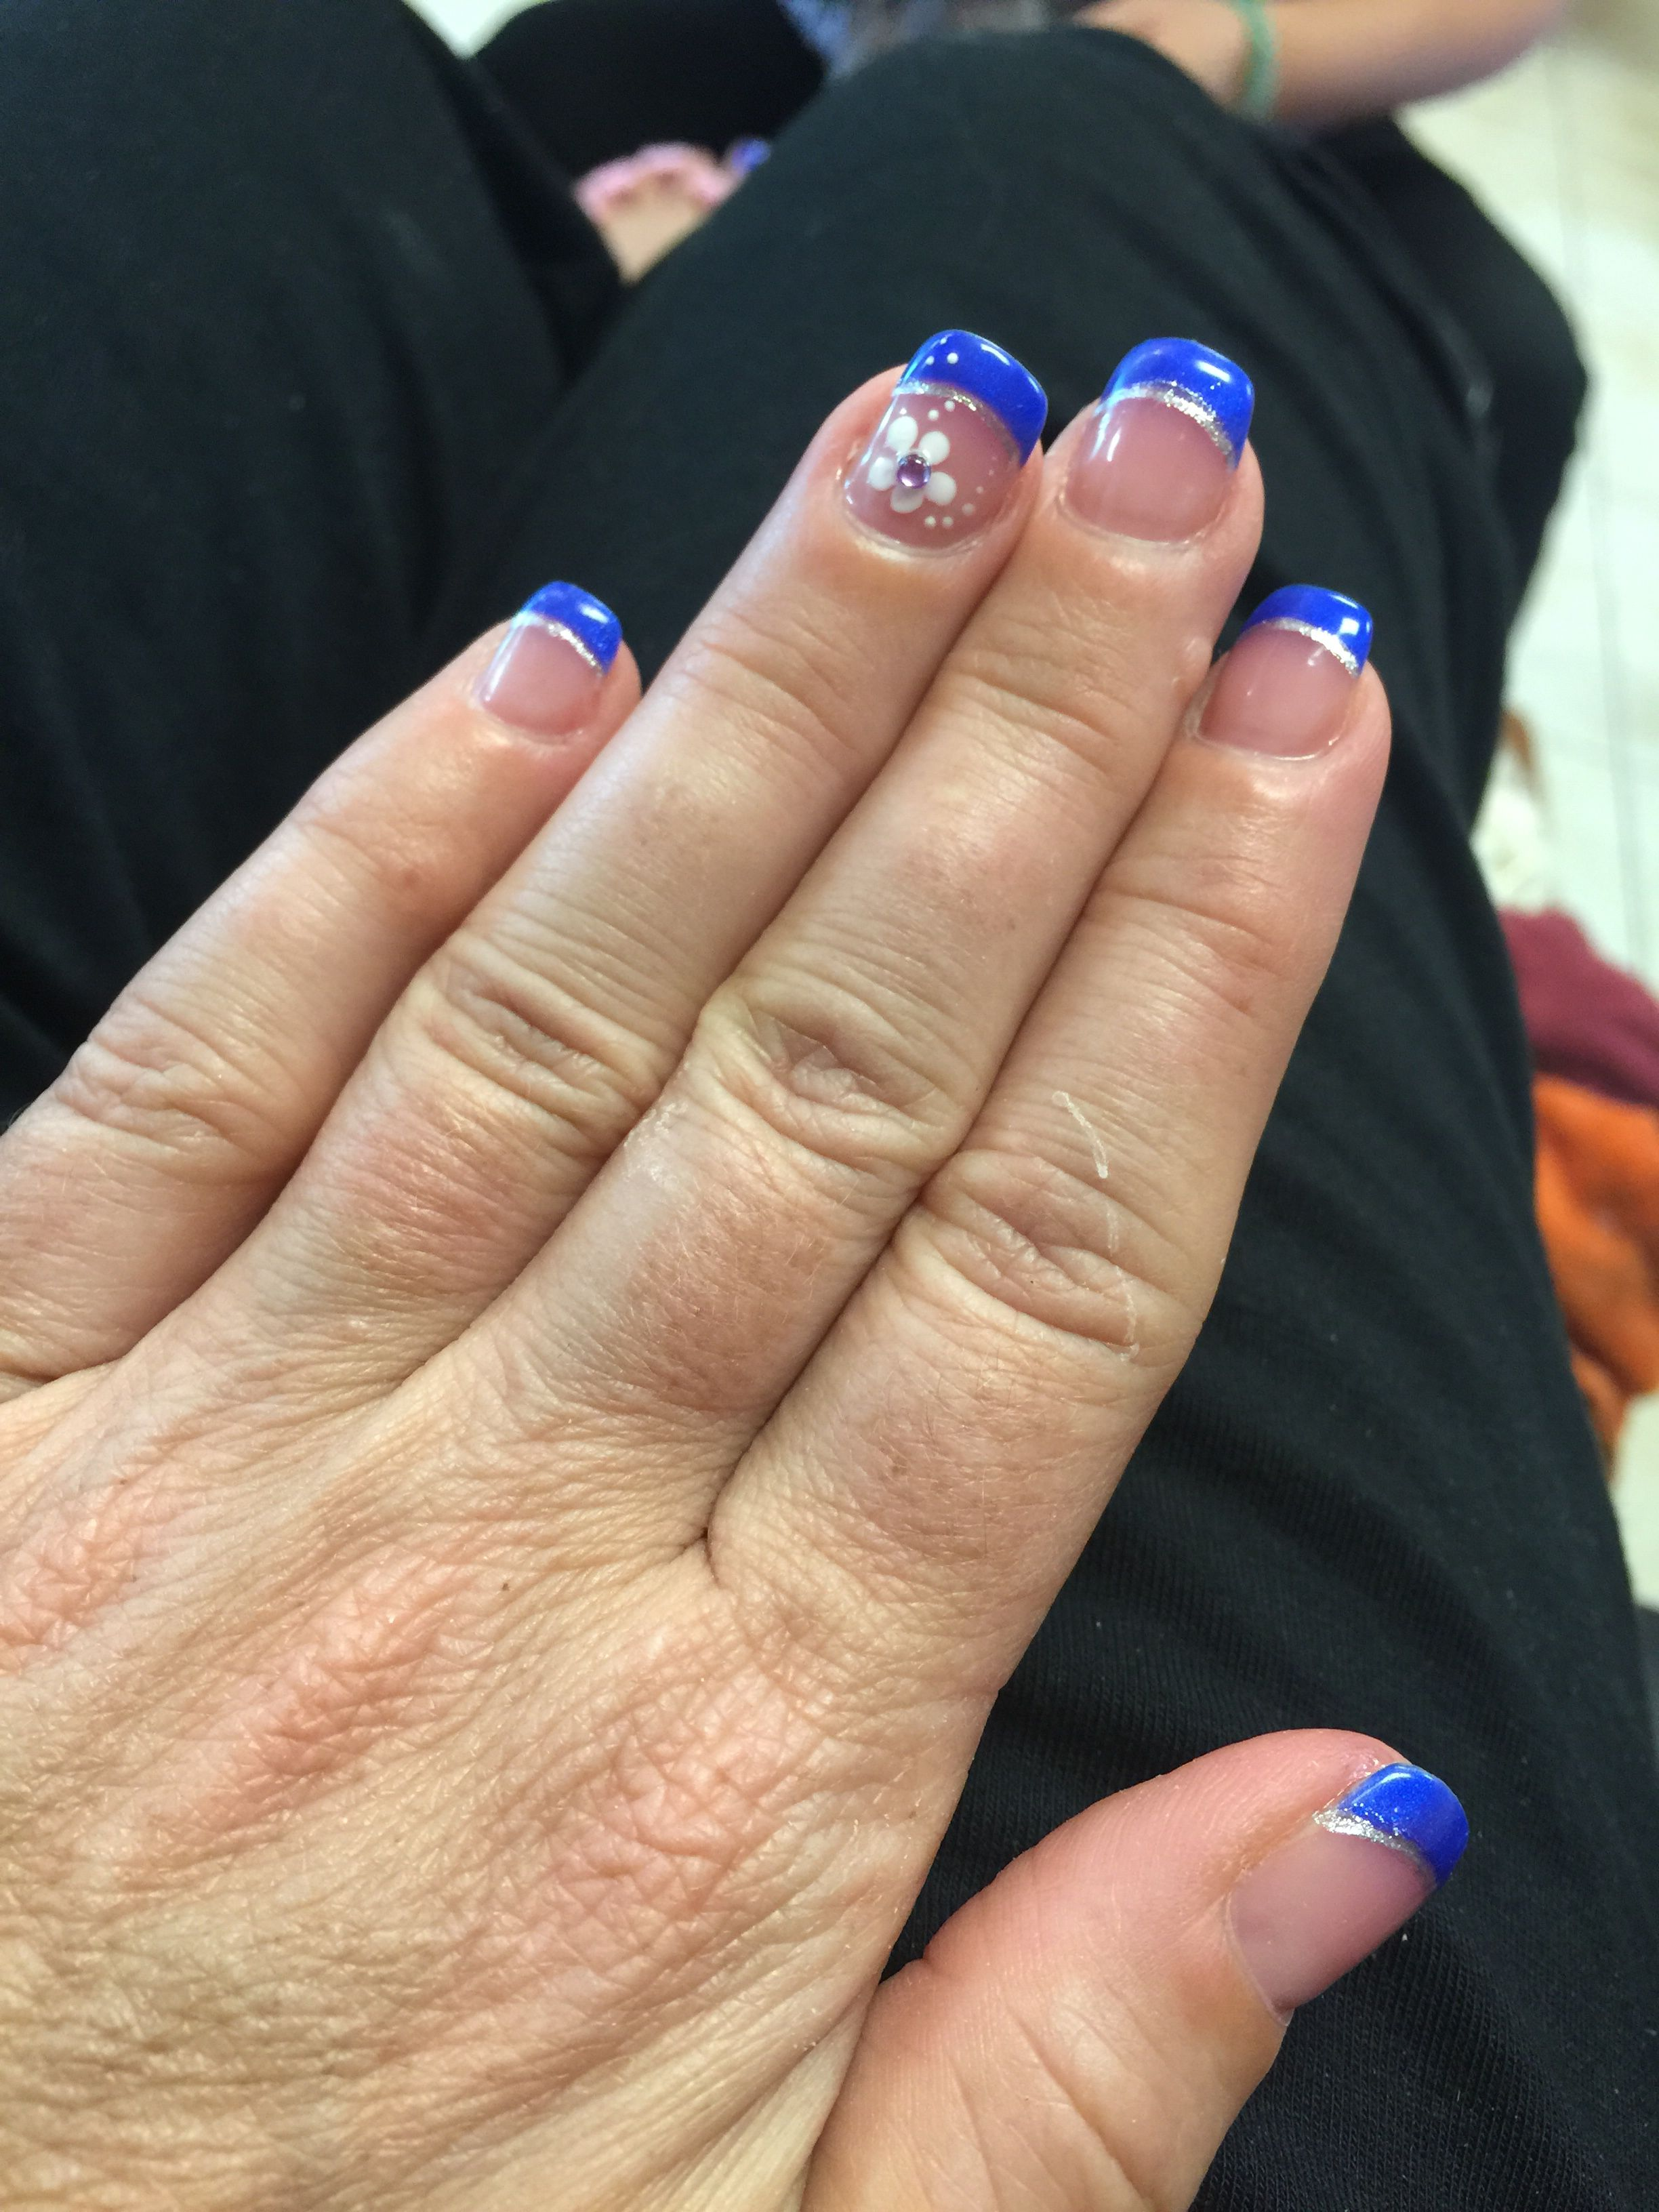 Nails by Amy Nail Forum Louisburg Road Raleigh   Stuff I Like ...